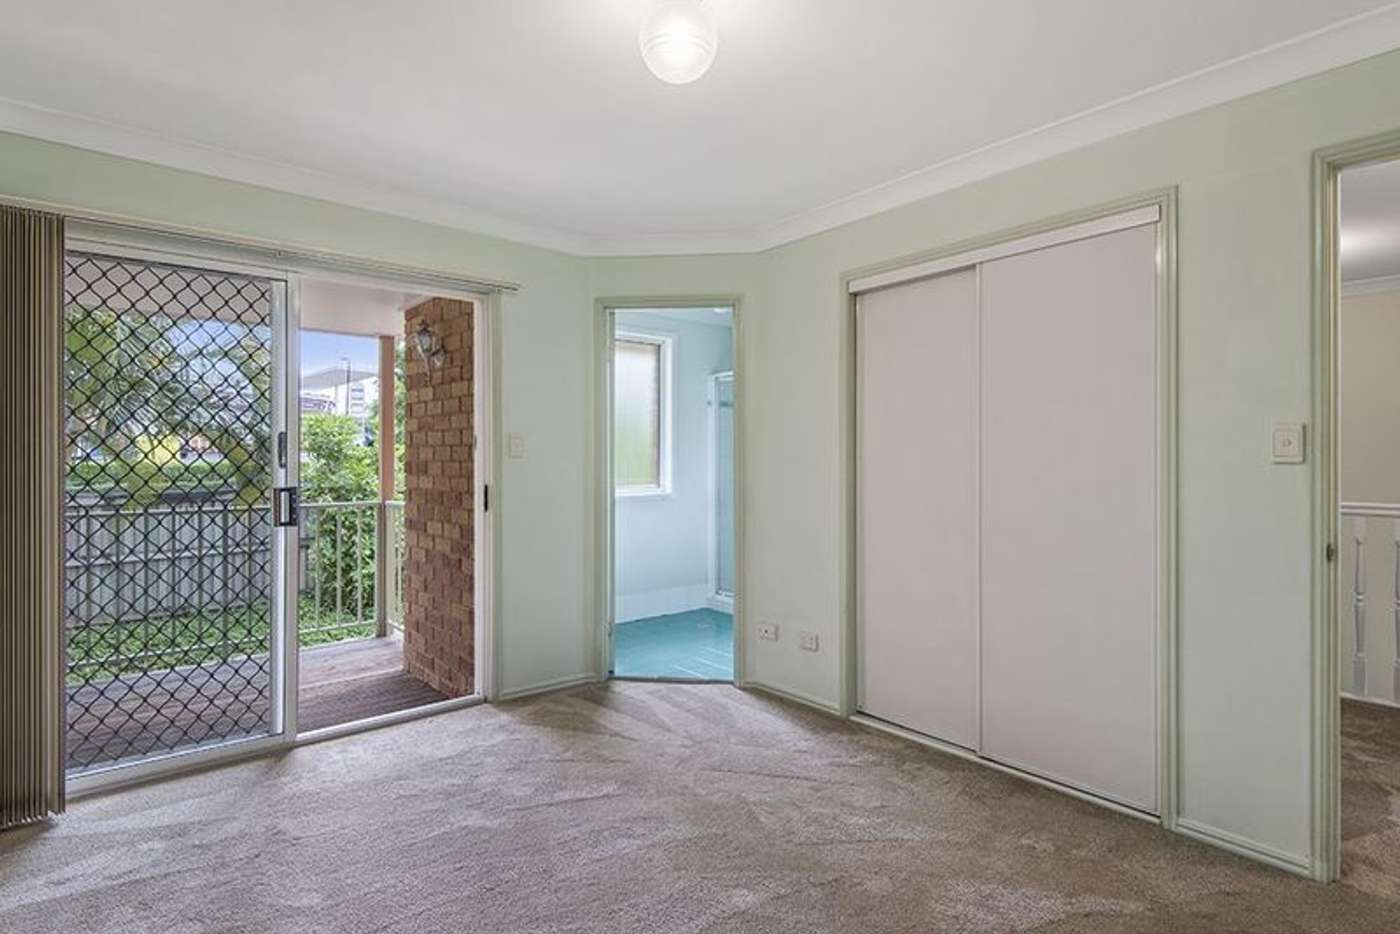 Seventh view of Homely house listing, 9/18 Swan Lake Crescent, Calamvale QLD 4116